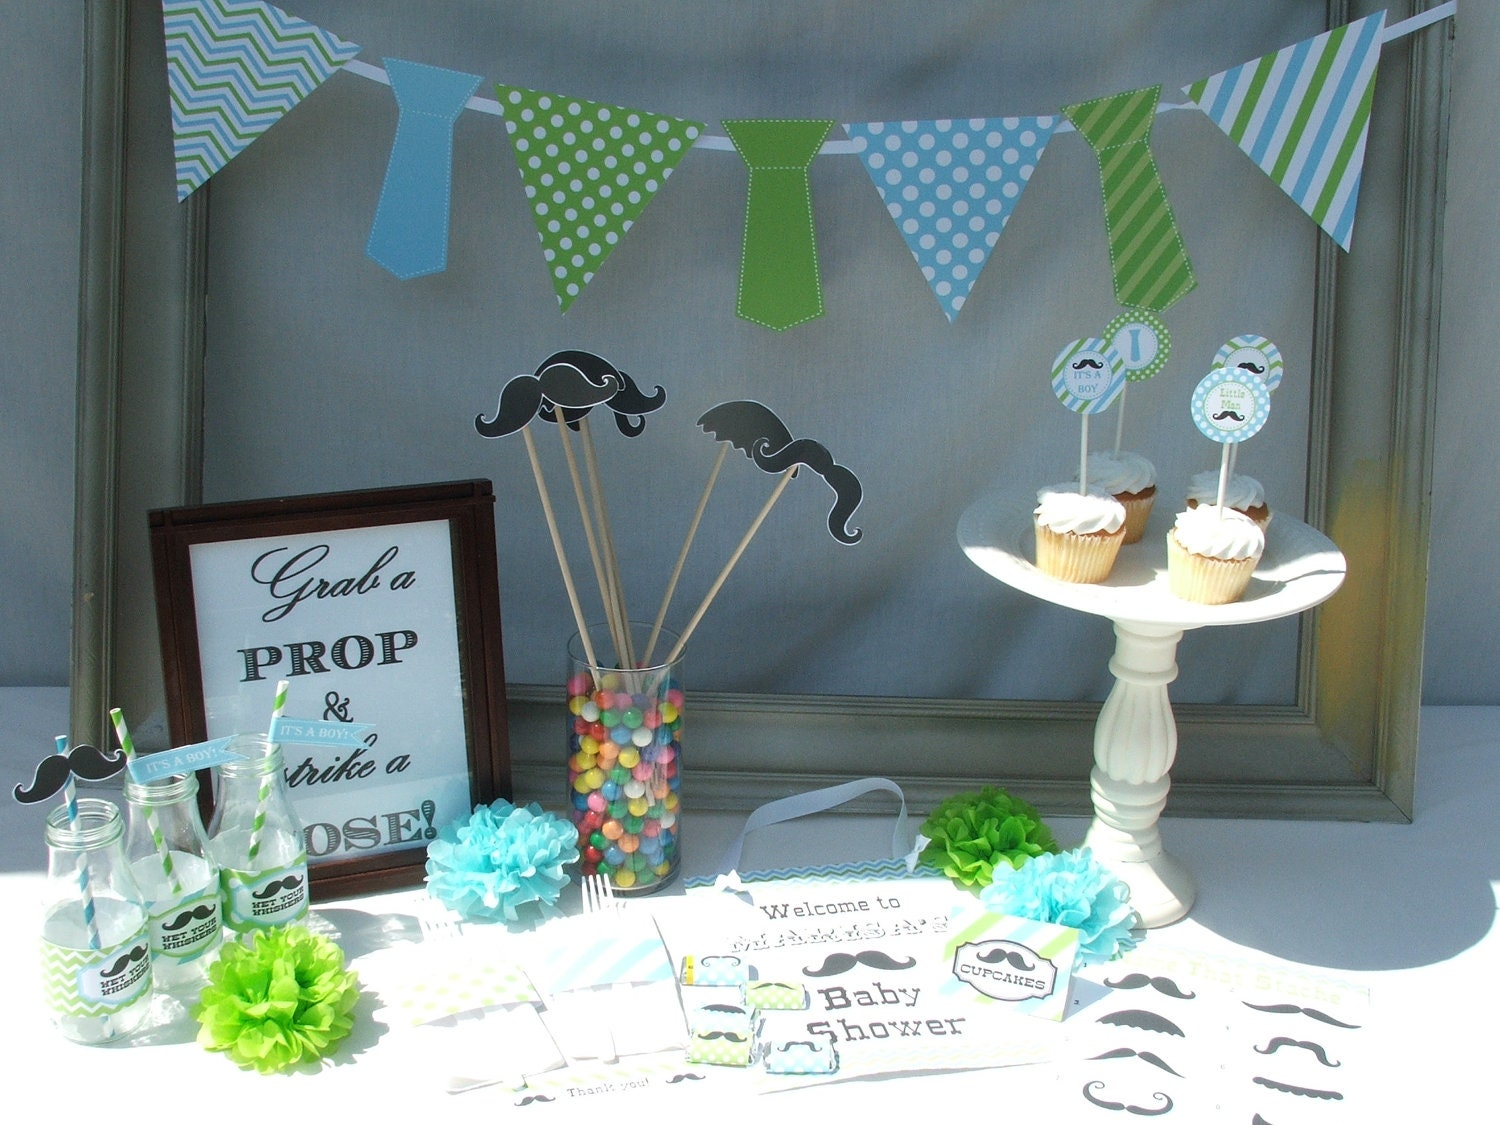 Boy baby shower decorations party favors ideas for Baby decoration ideas for shower